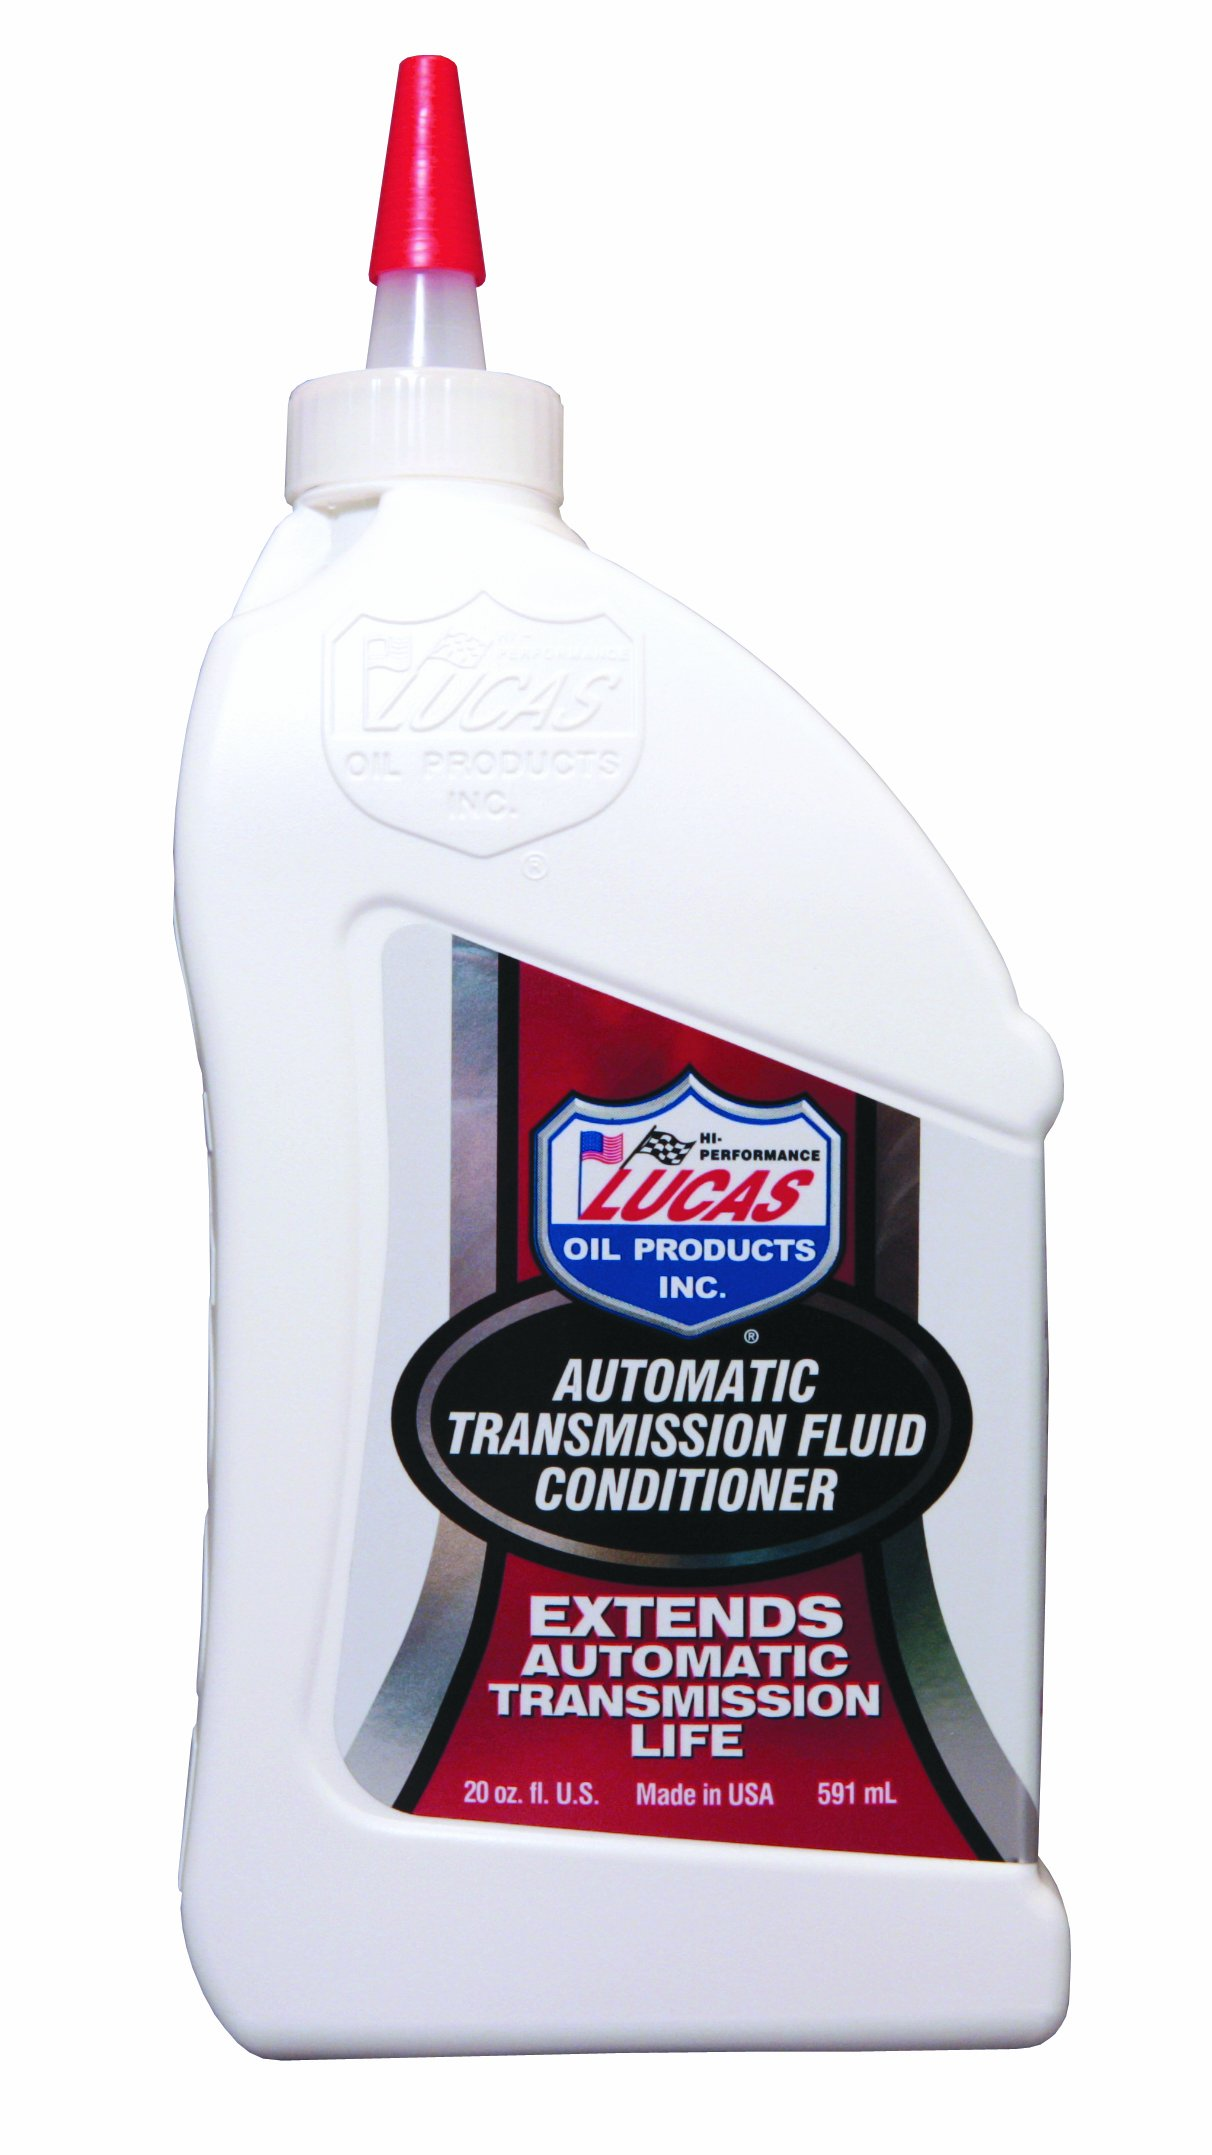 Lucas Oil 10441-12PK Automatic Transmission Fluid Conditioner - 20 oz, (Case of 12) by Lucas Oil